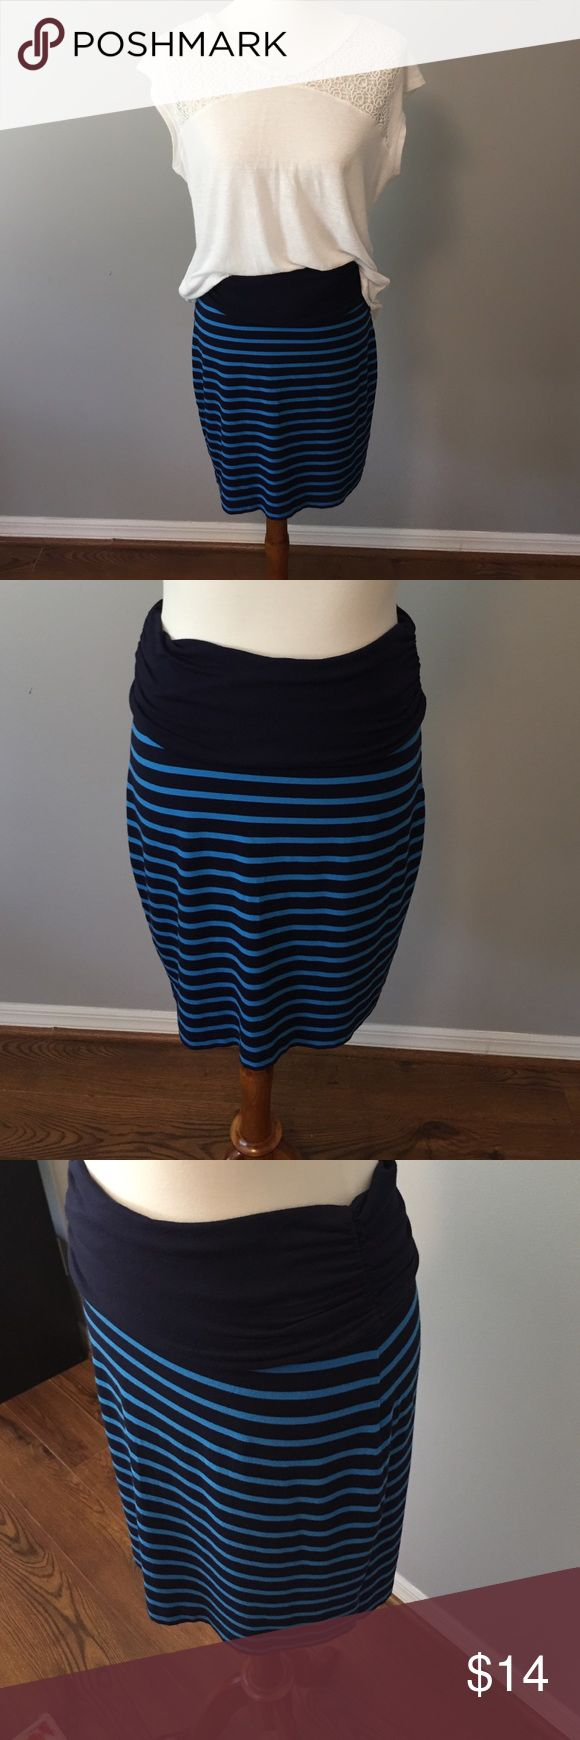 Gap skirt Curve hugging skirt with comfy foldover waist.  Super soft material is light and stretchy.  Great with a casual t-shirt or tank top for a cute, casual vibe. GAP Skirts Midi